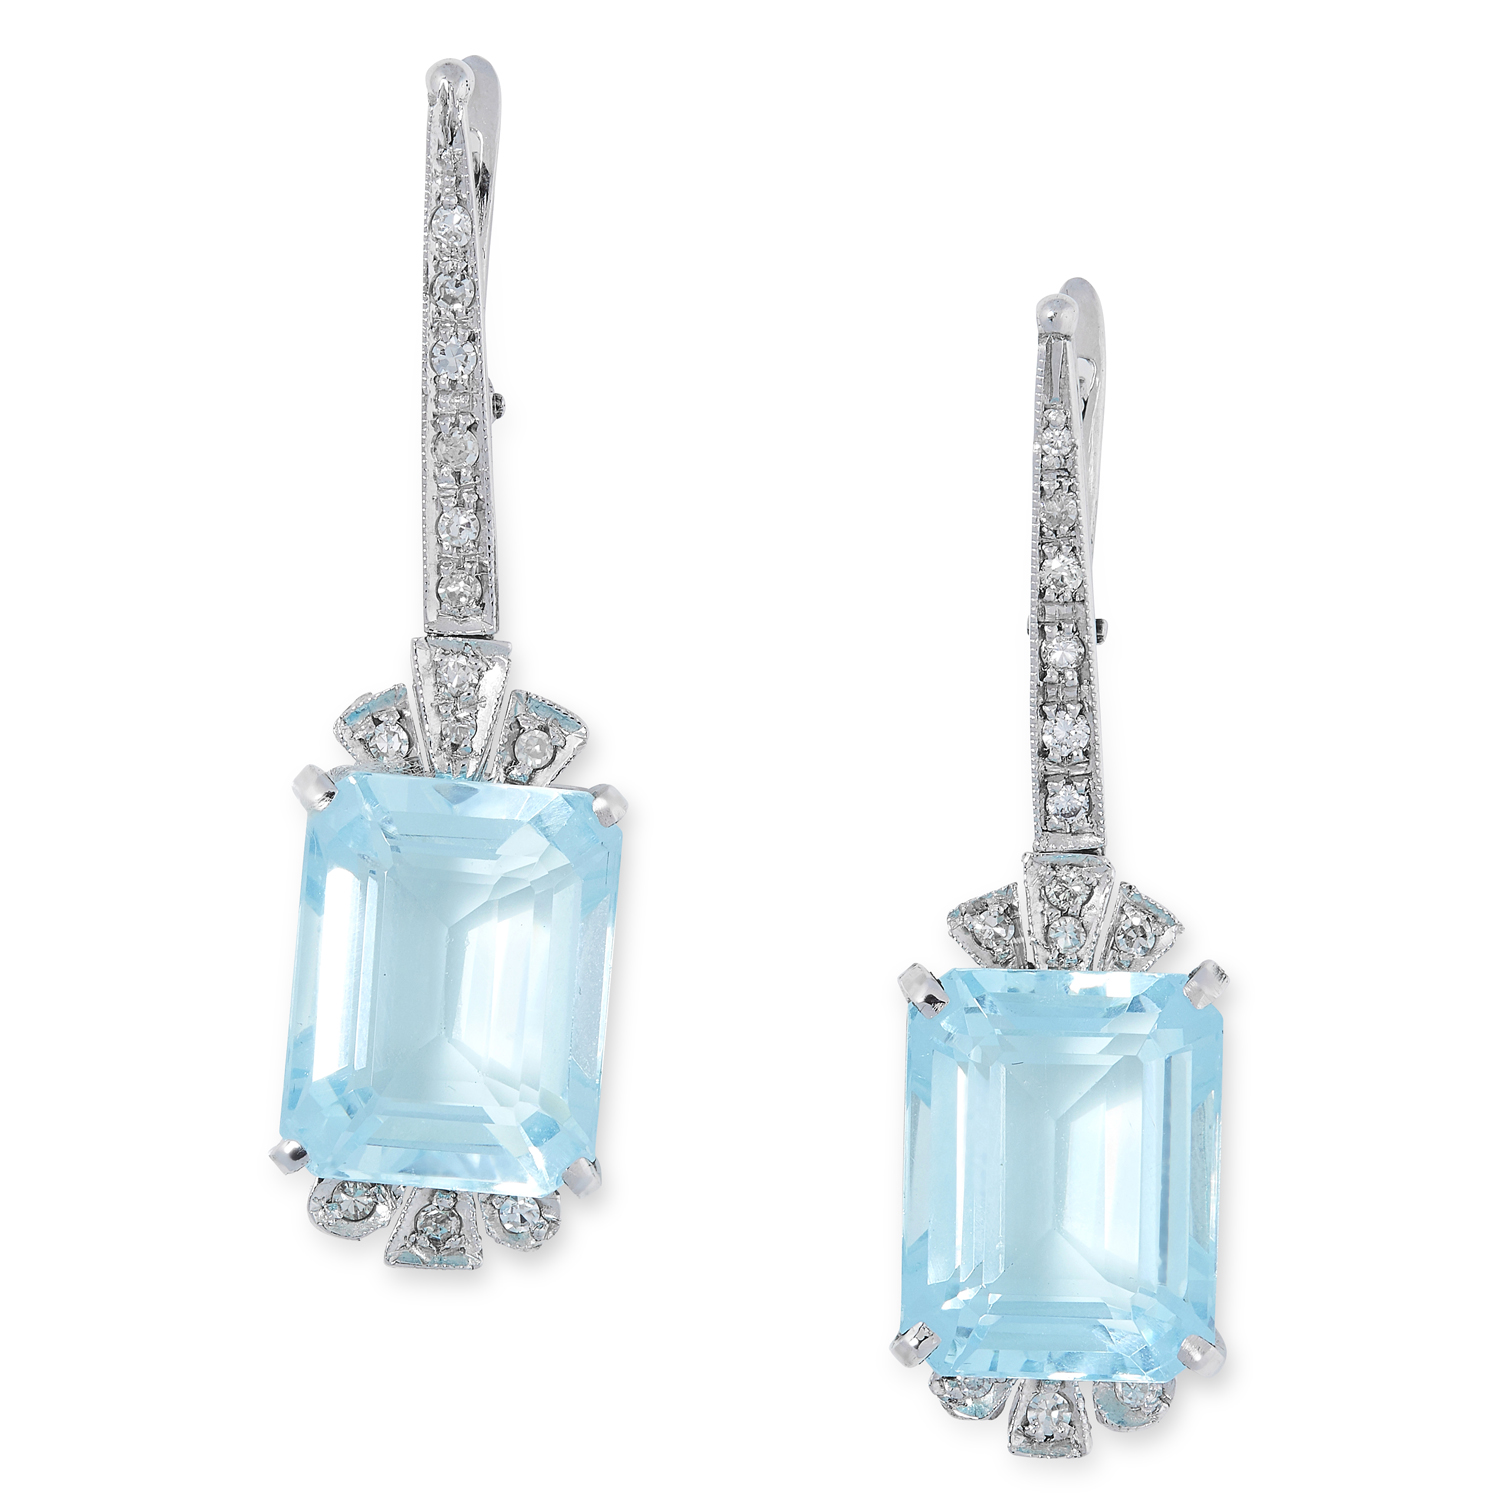 A PAIR OF BLUE TOPAZ AND DIAMOND EARRINGS set with emerald cut blue topaz and round brilliant cut